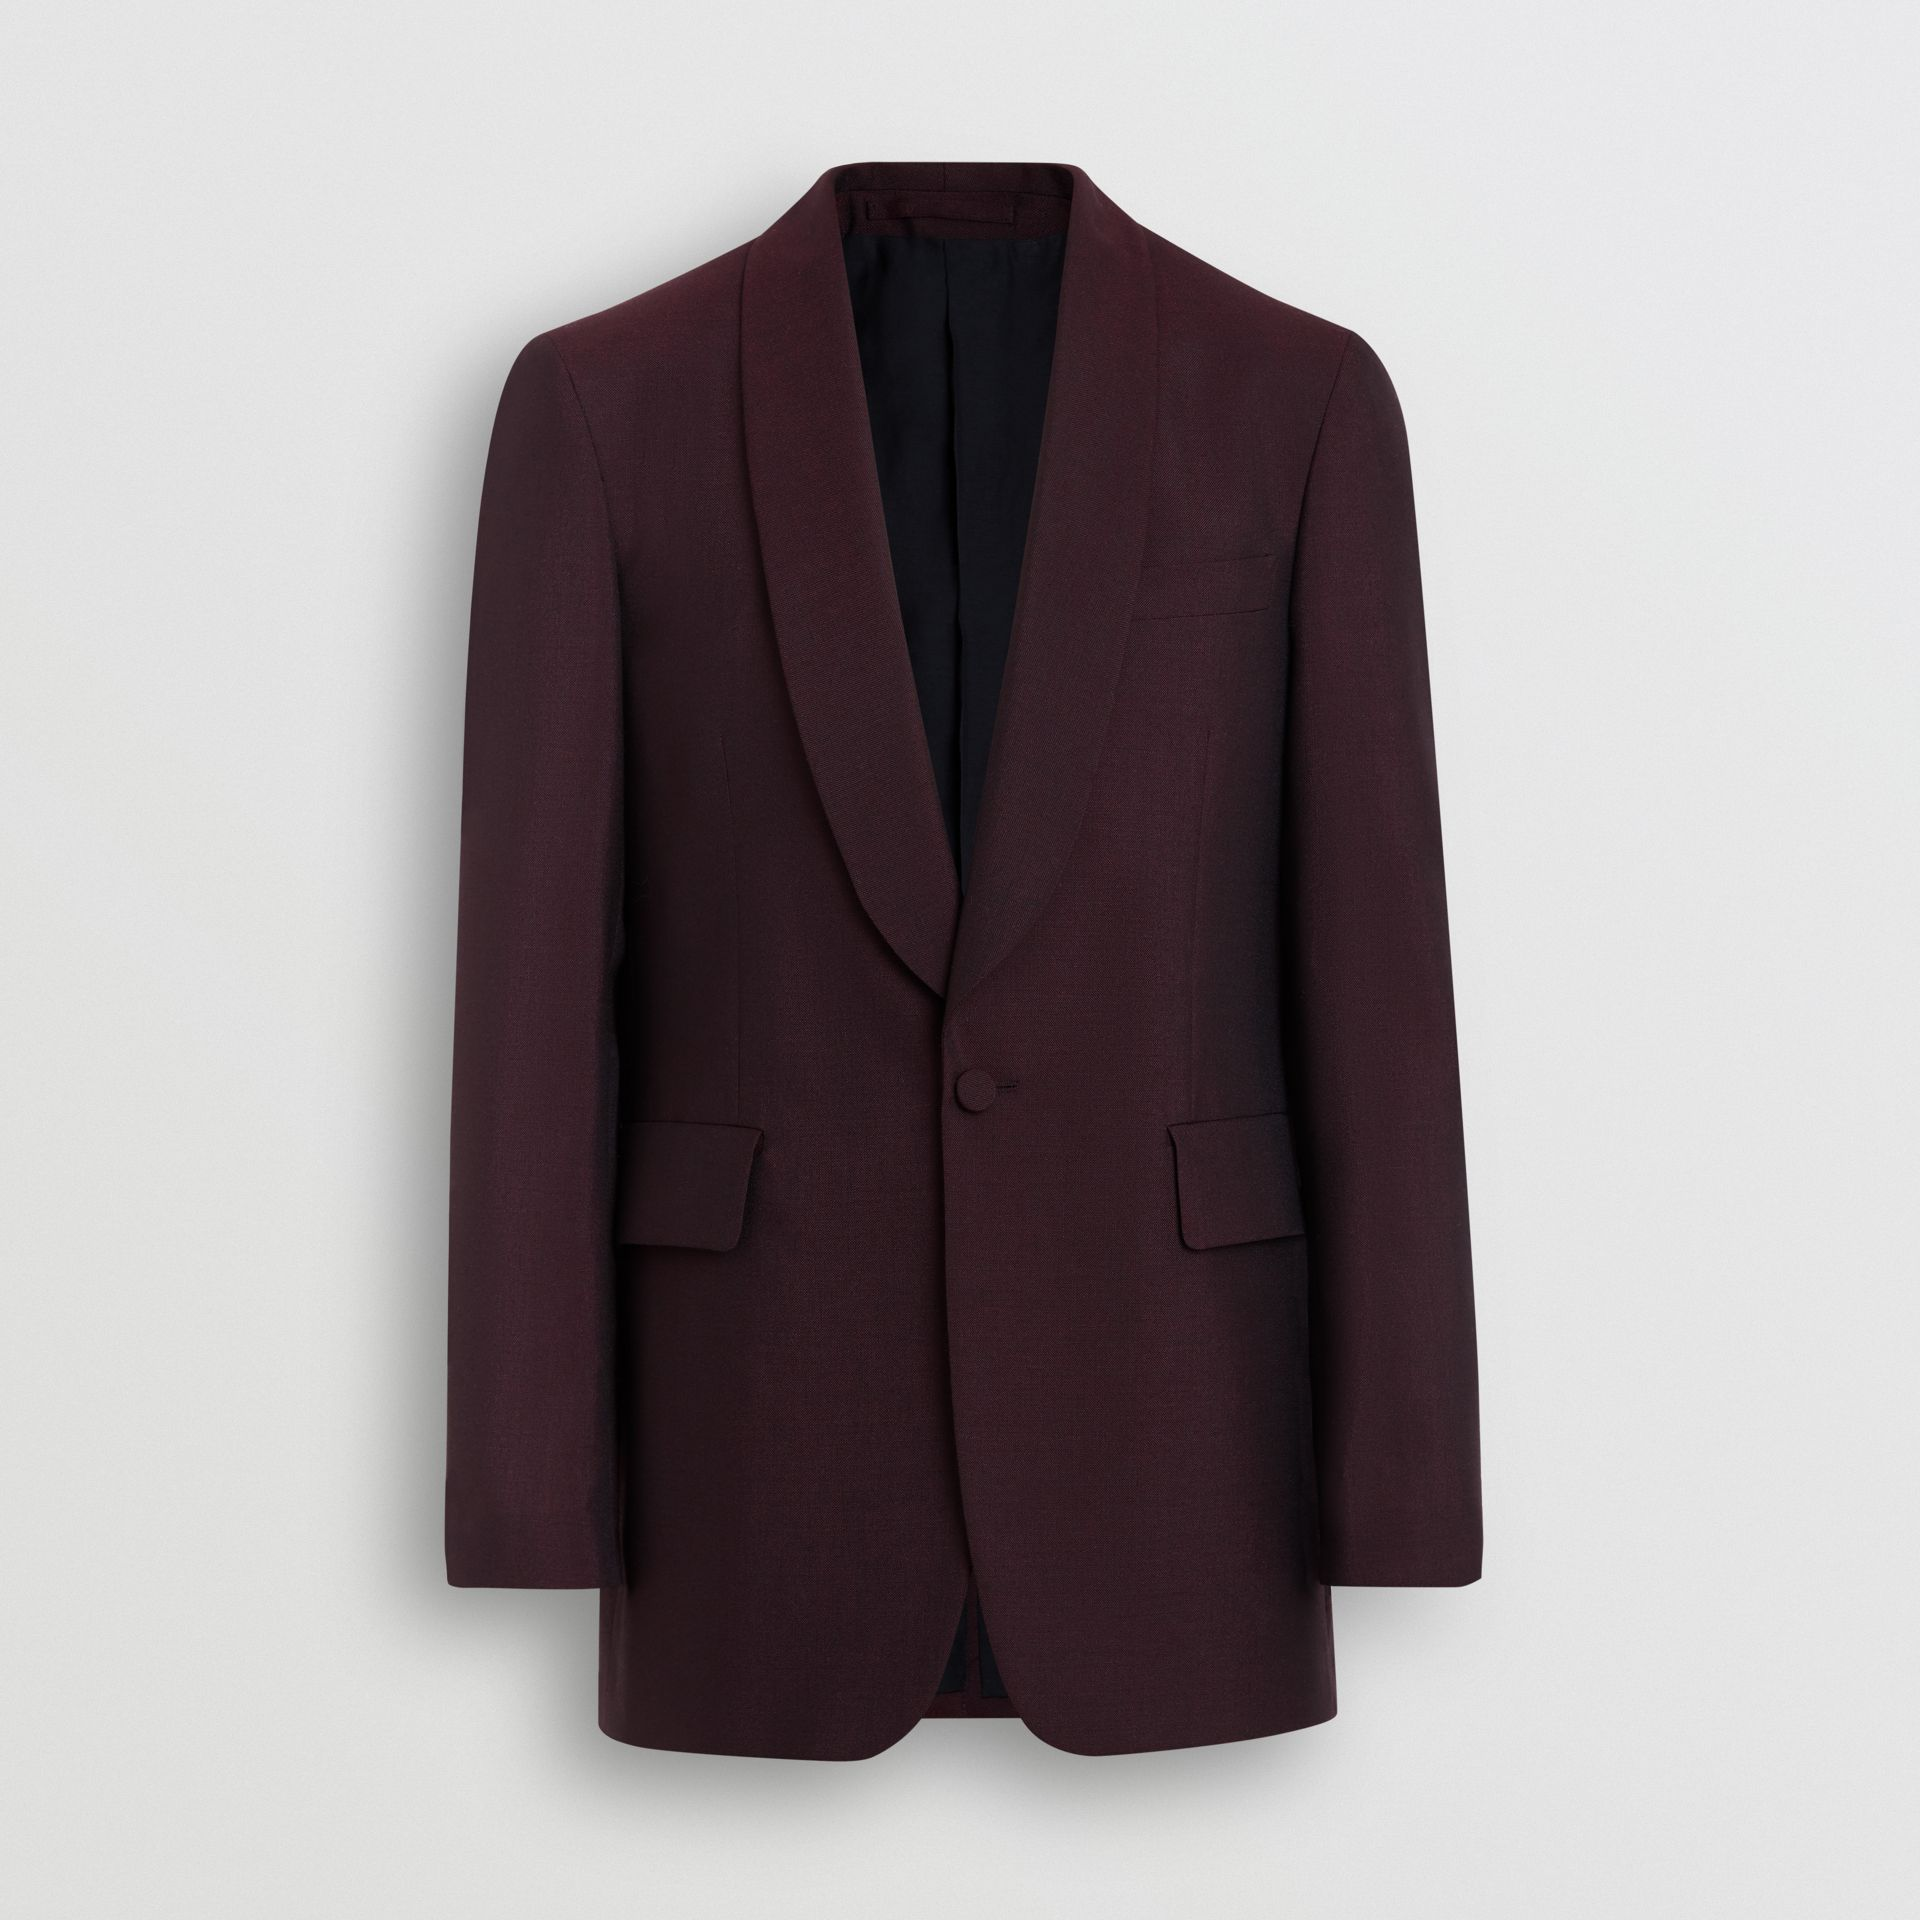 Classic Fit Mohair Evening Jacket in Deep Burgundy - Men | Burberry - gallery image 3